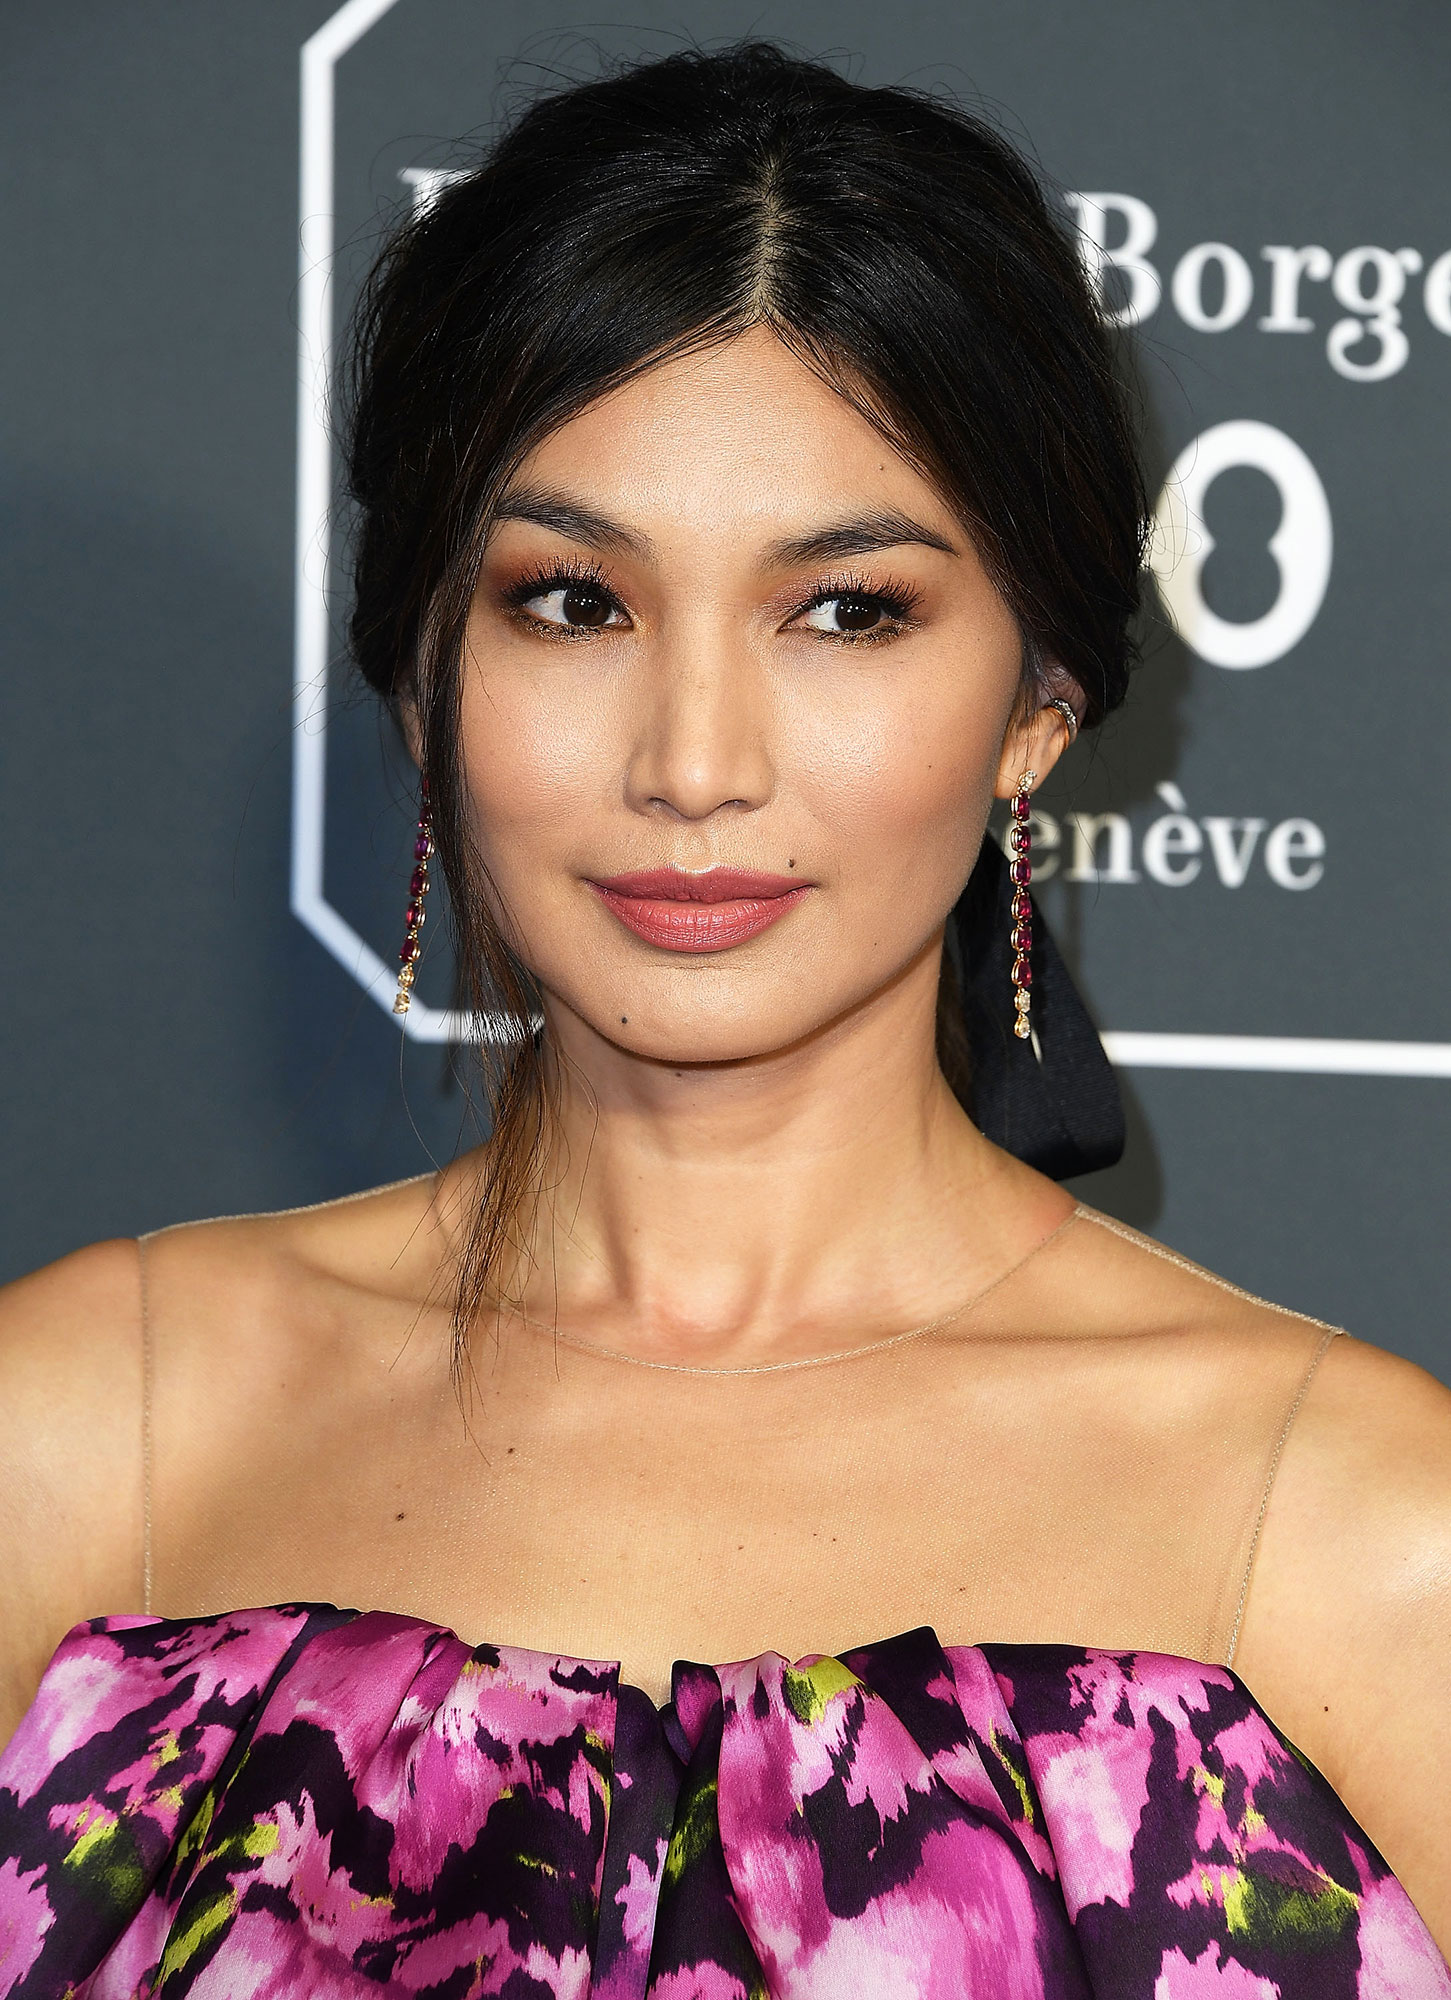 Gemma Chan Critics' Choice Awards 2019 - With a sexy-chic center parted low ponytail by stylist Clarissa Rubenstien using Dove products and candy pink lips by makeup pro Monika Blunder using Pat McGrath Labs.